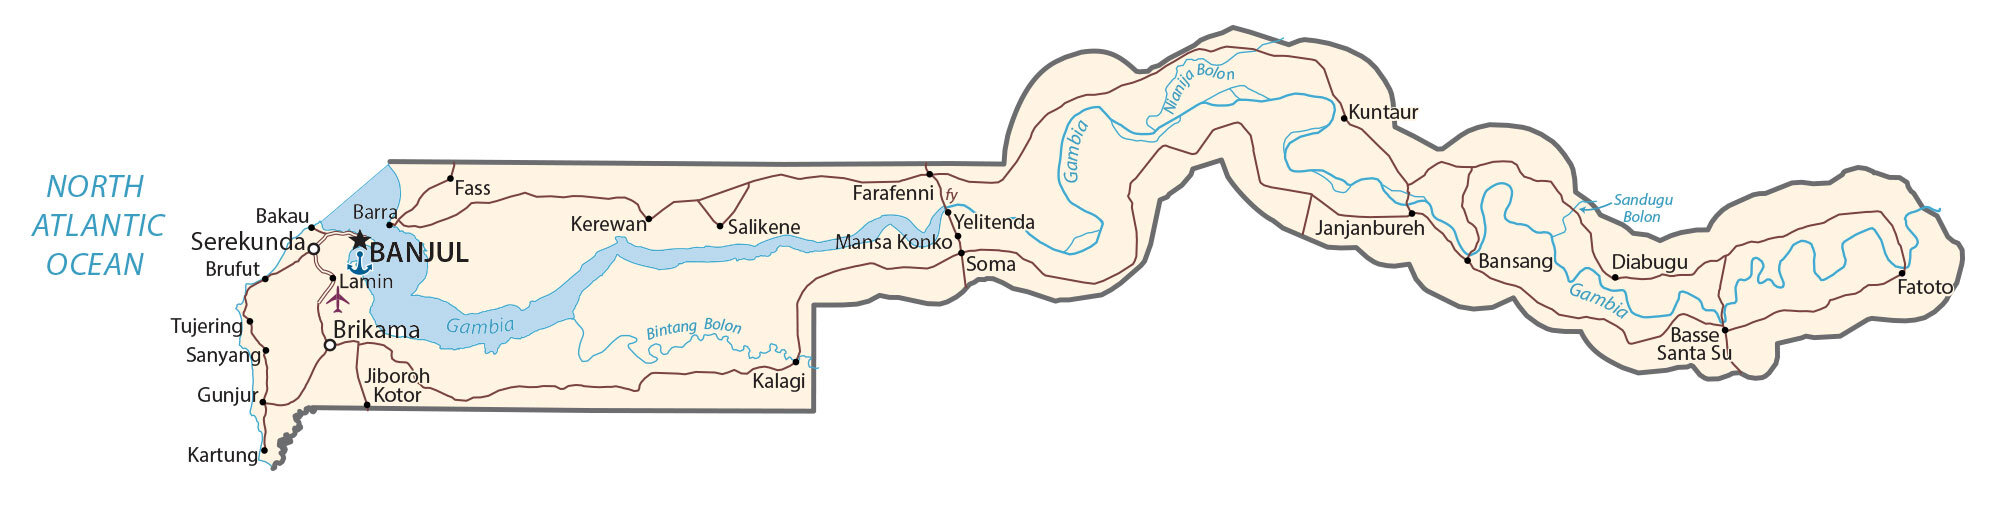 Gambia Map